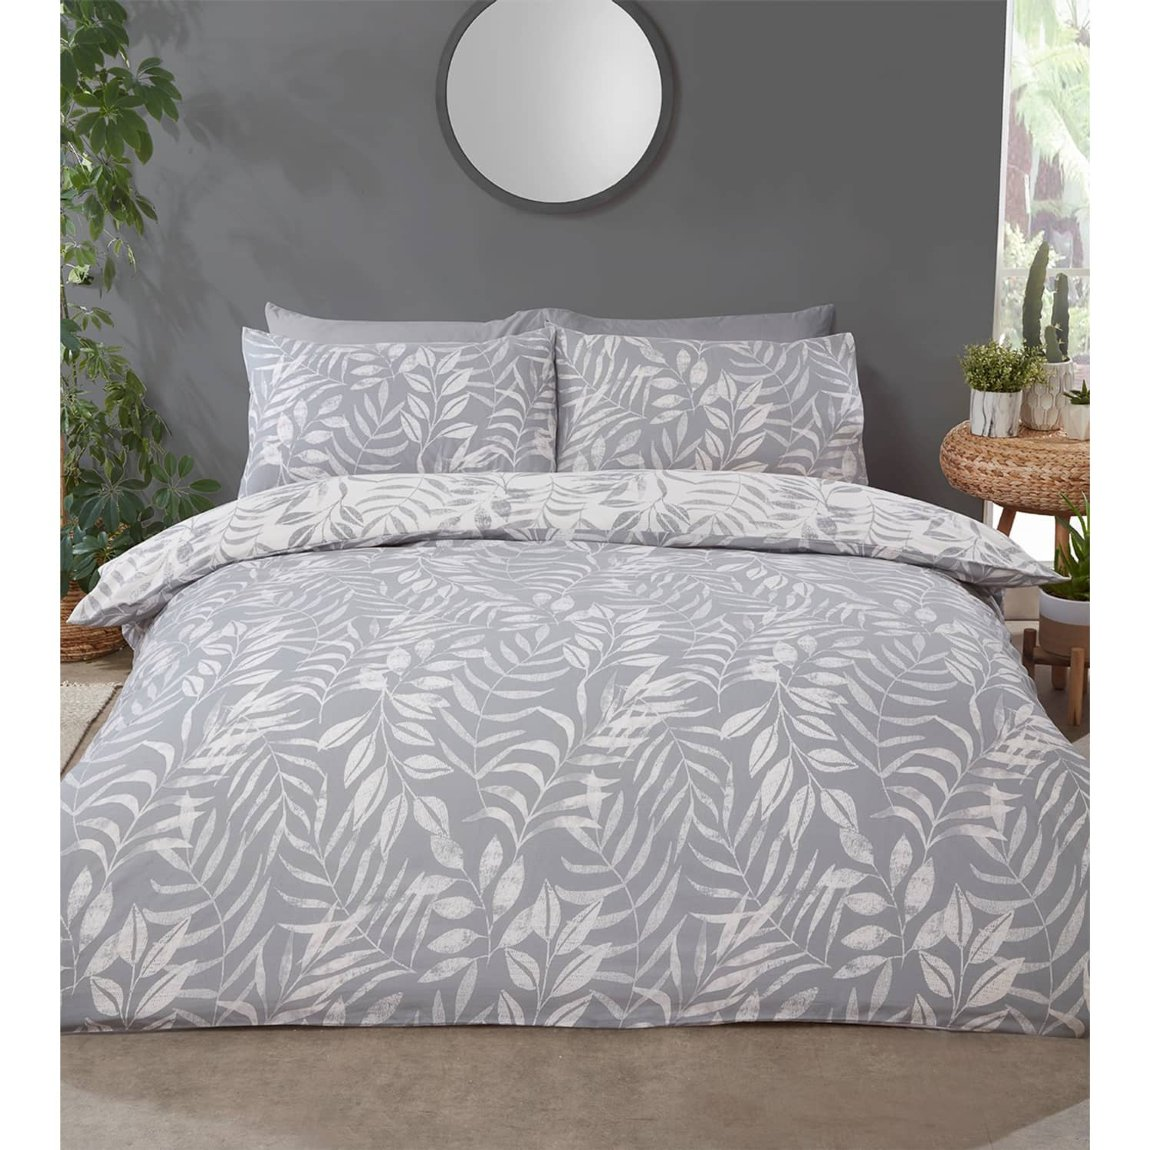 Home & Co Leaf King Duvet Set - Grey